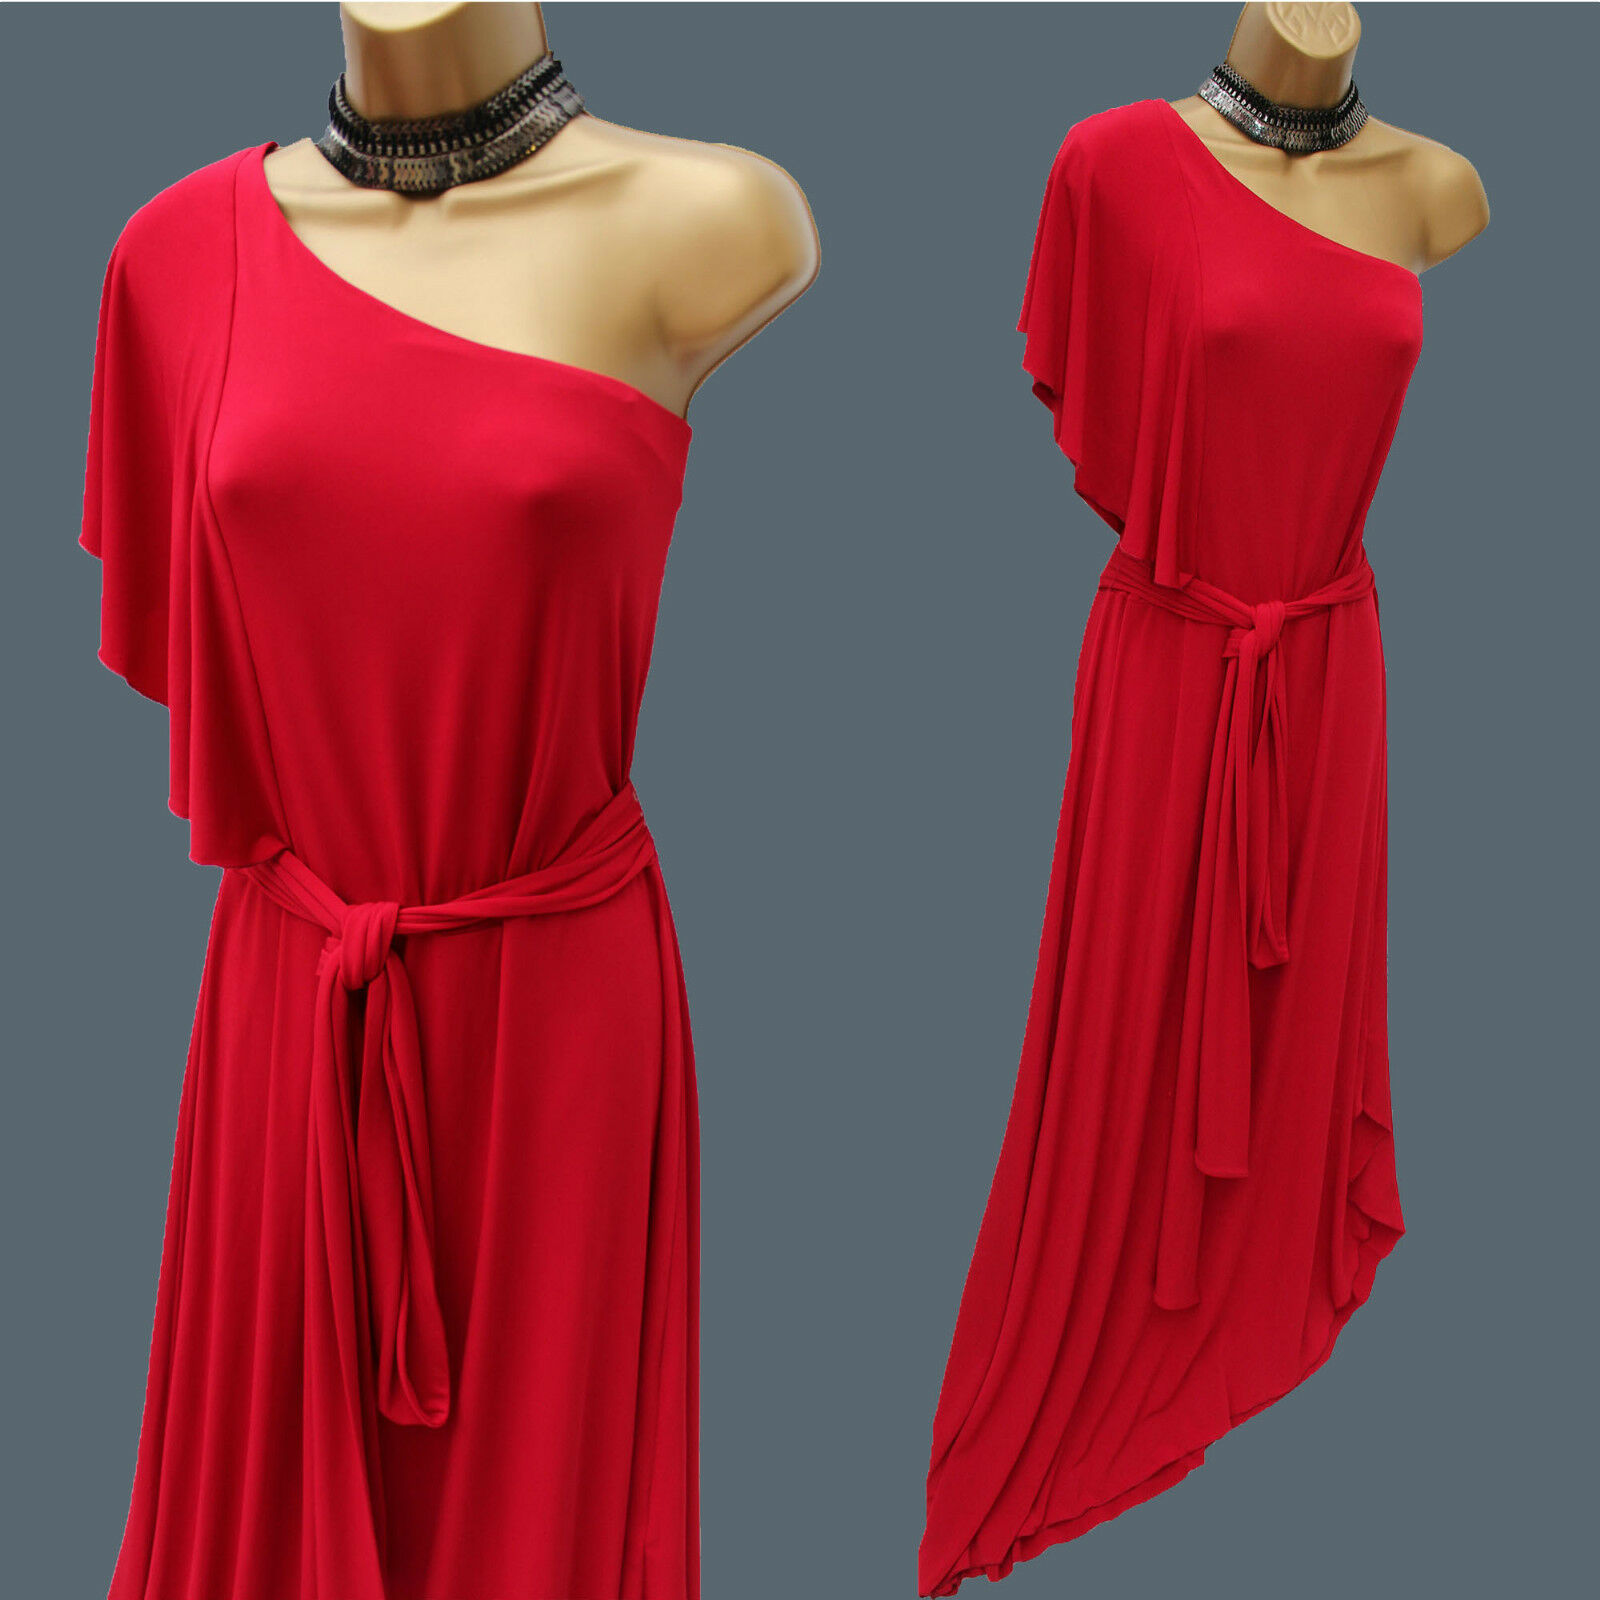 Next Signature Glam Bardot Jersey Red One Shoulder Long Ballgown Maxi Dress 12UK